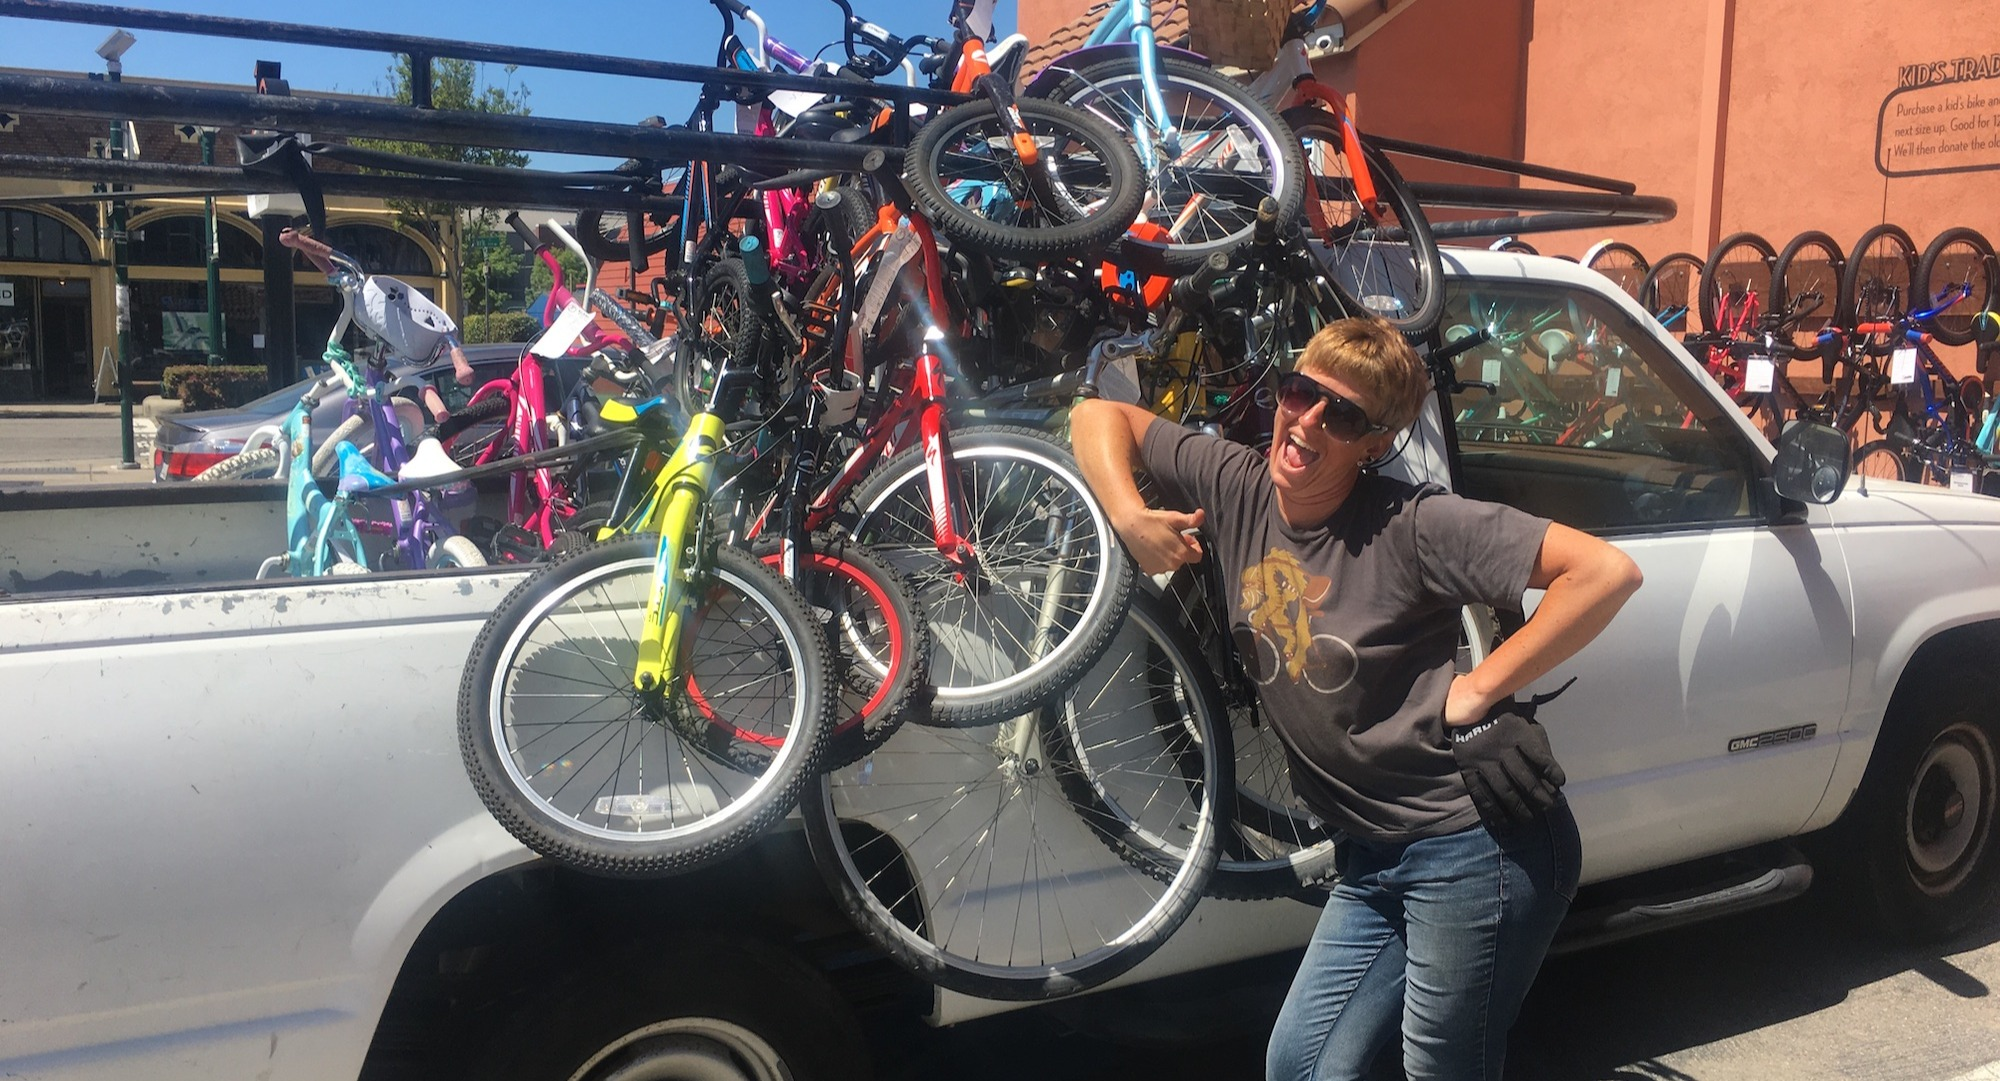 Bike donations loaded into a truck